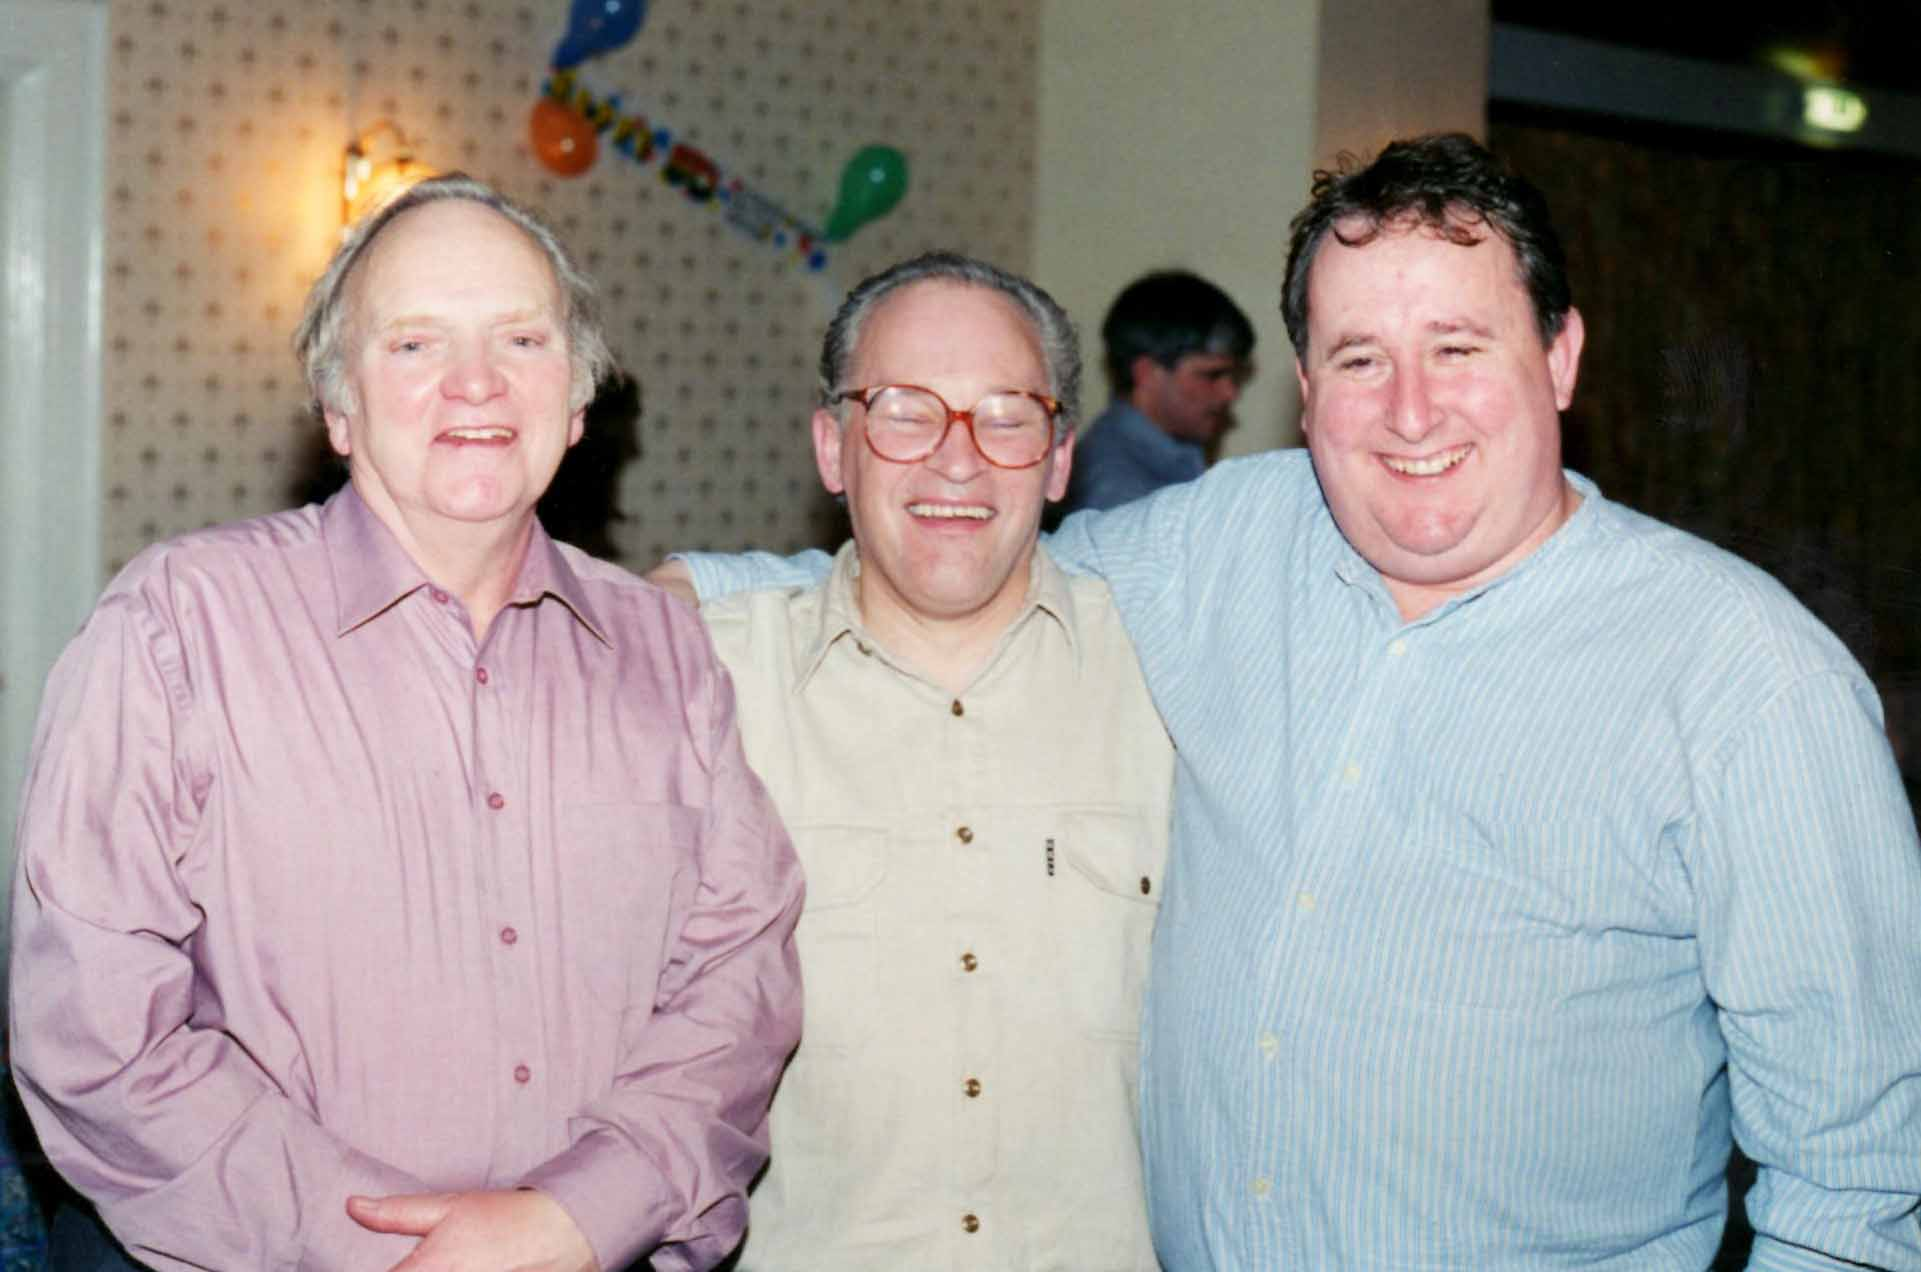 img008-bob-metcalfe-barry-wilkinson-jw-a-storey-to-tell